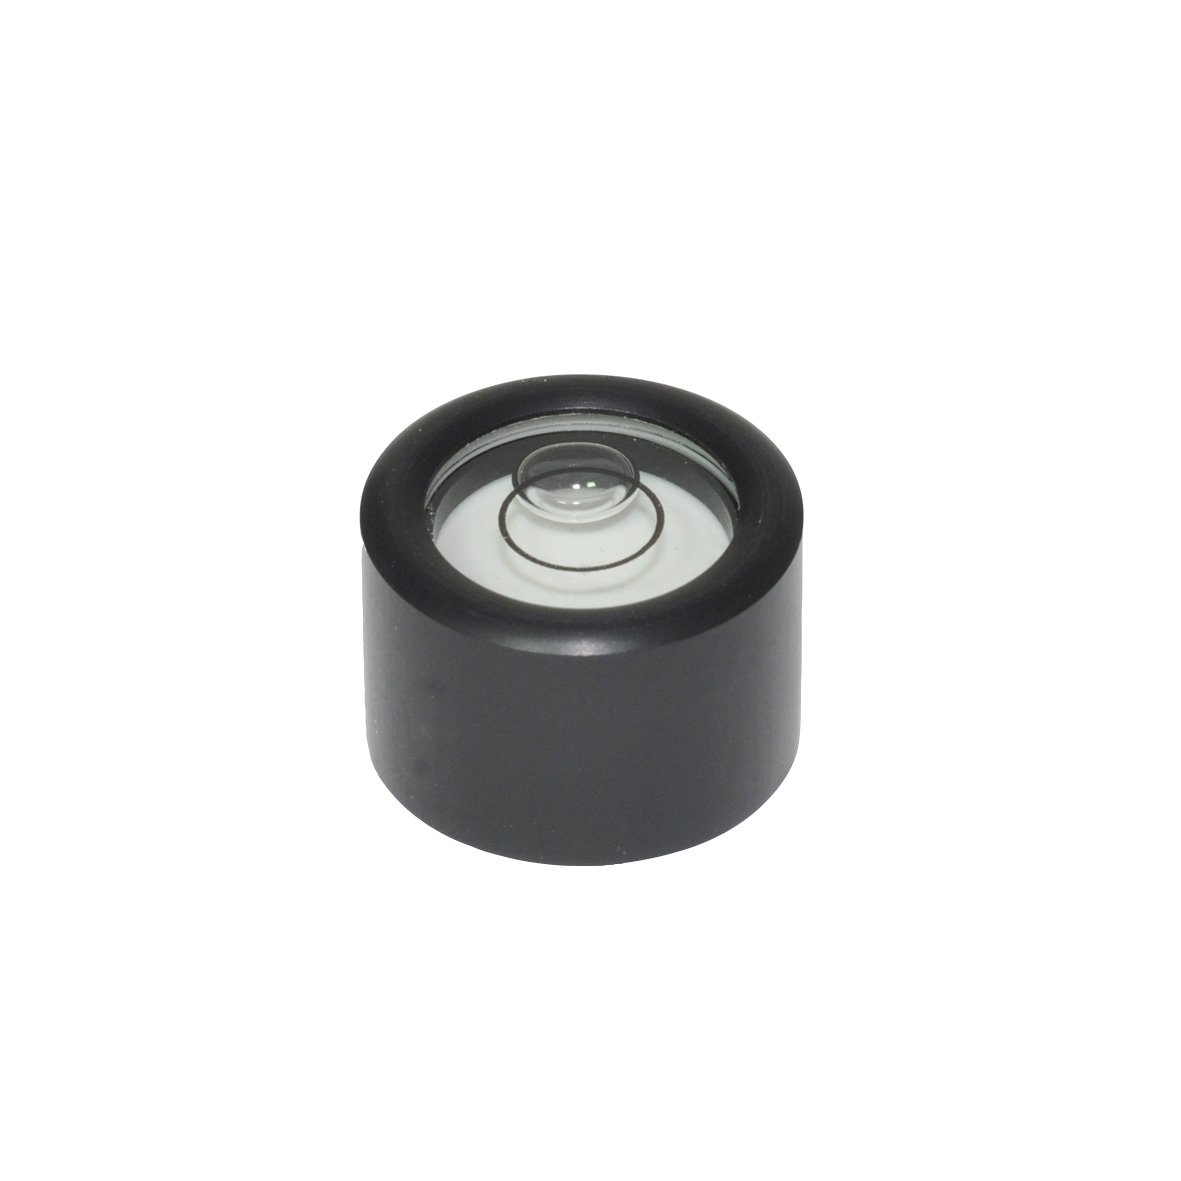 J.W. Winco GN2280 Aluminum Adjustable Bull's-Eye Level with Mounting Threads, 24mm (2280-ALS-24-K-30)